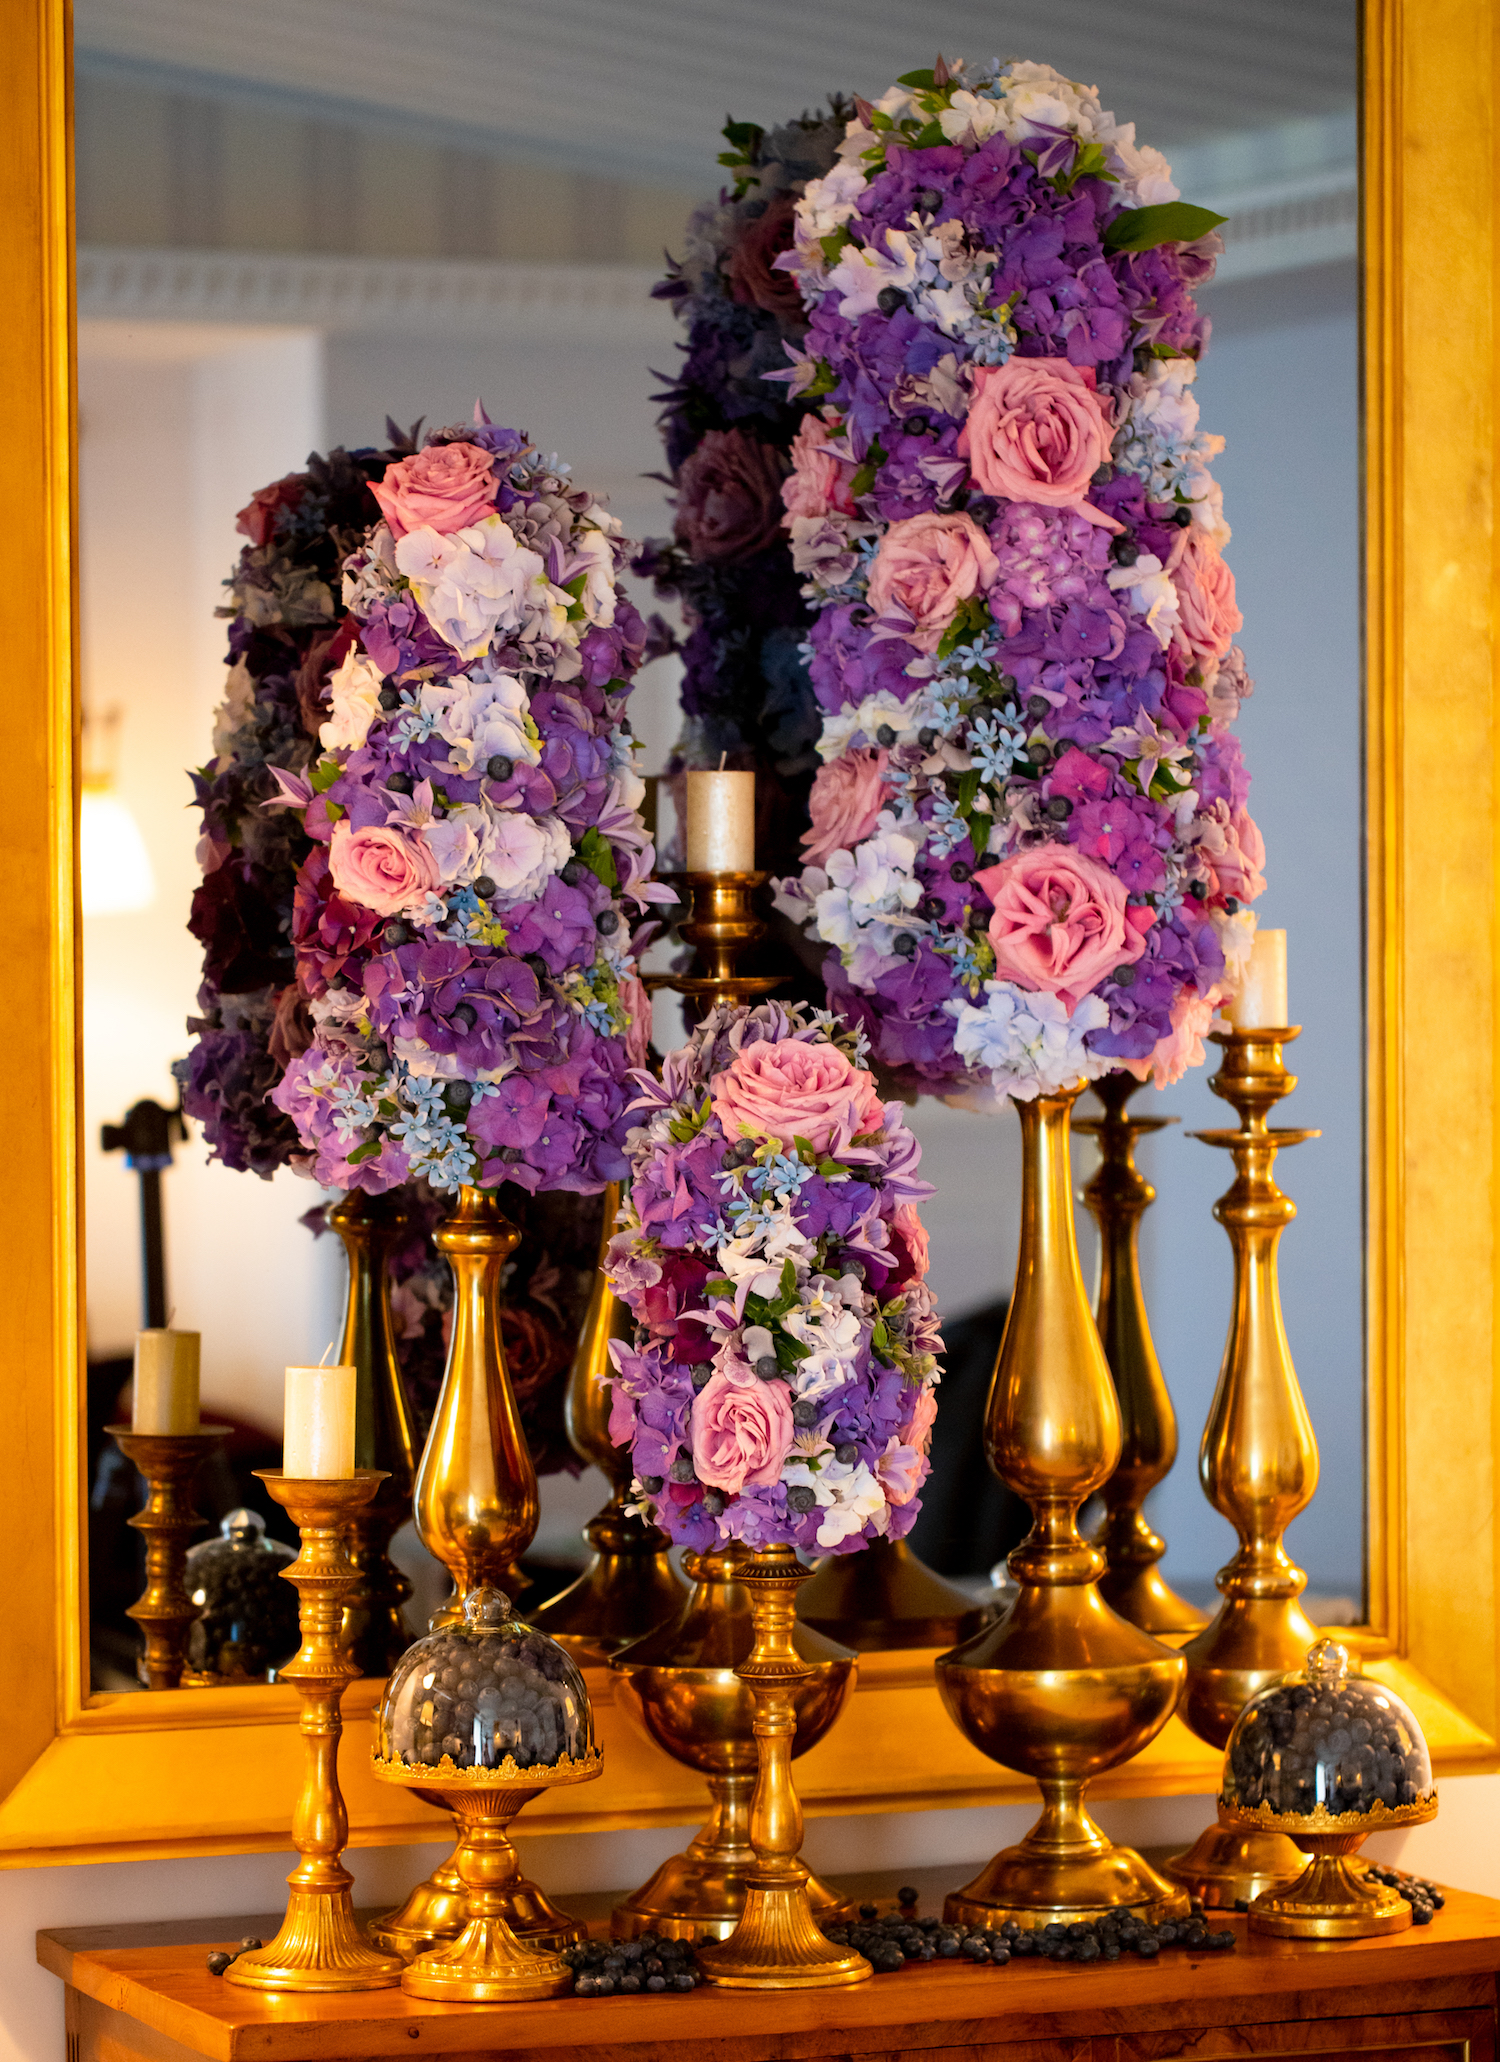 By LiQIN WANG- CREATIONS FLORALES JULIAN TONNELLIER